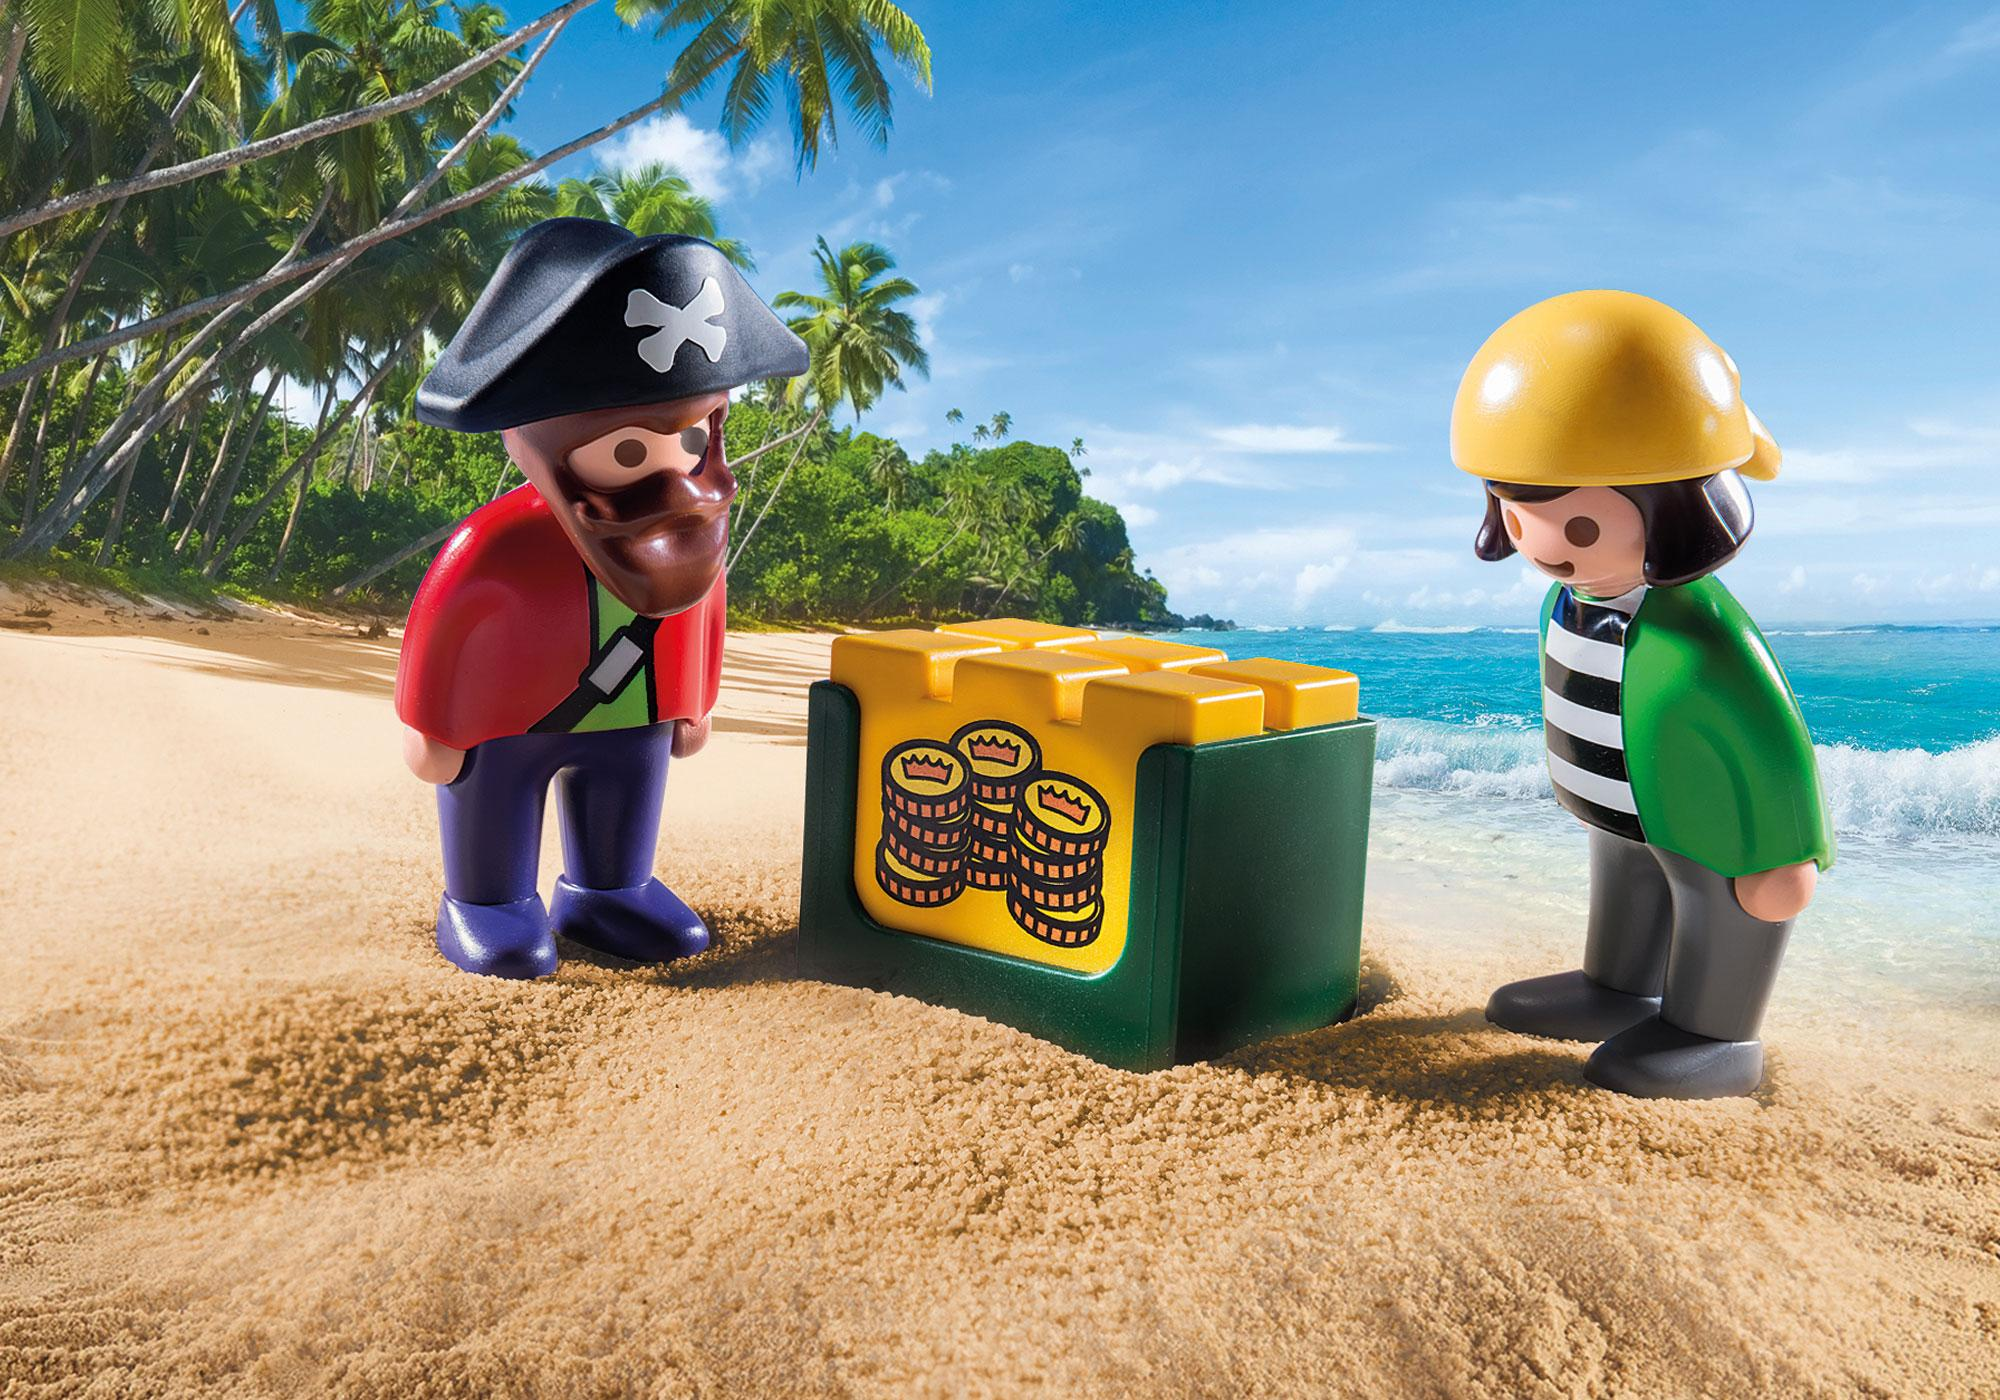 http://media.playmobil.com/i/playmobil/9118_product_extra1/1.2.3 Piratskepp